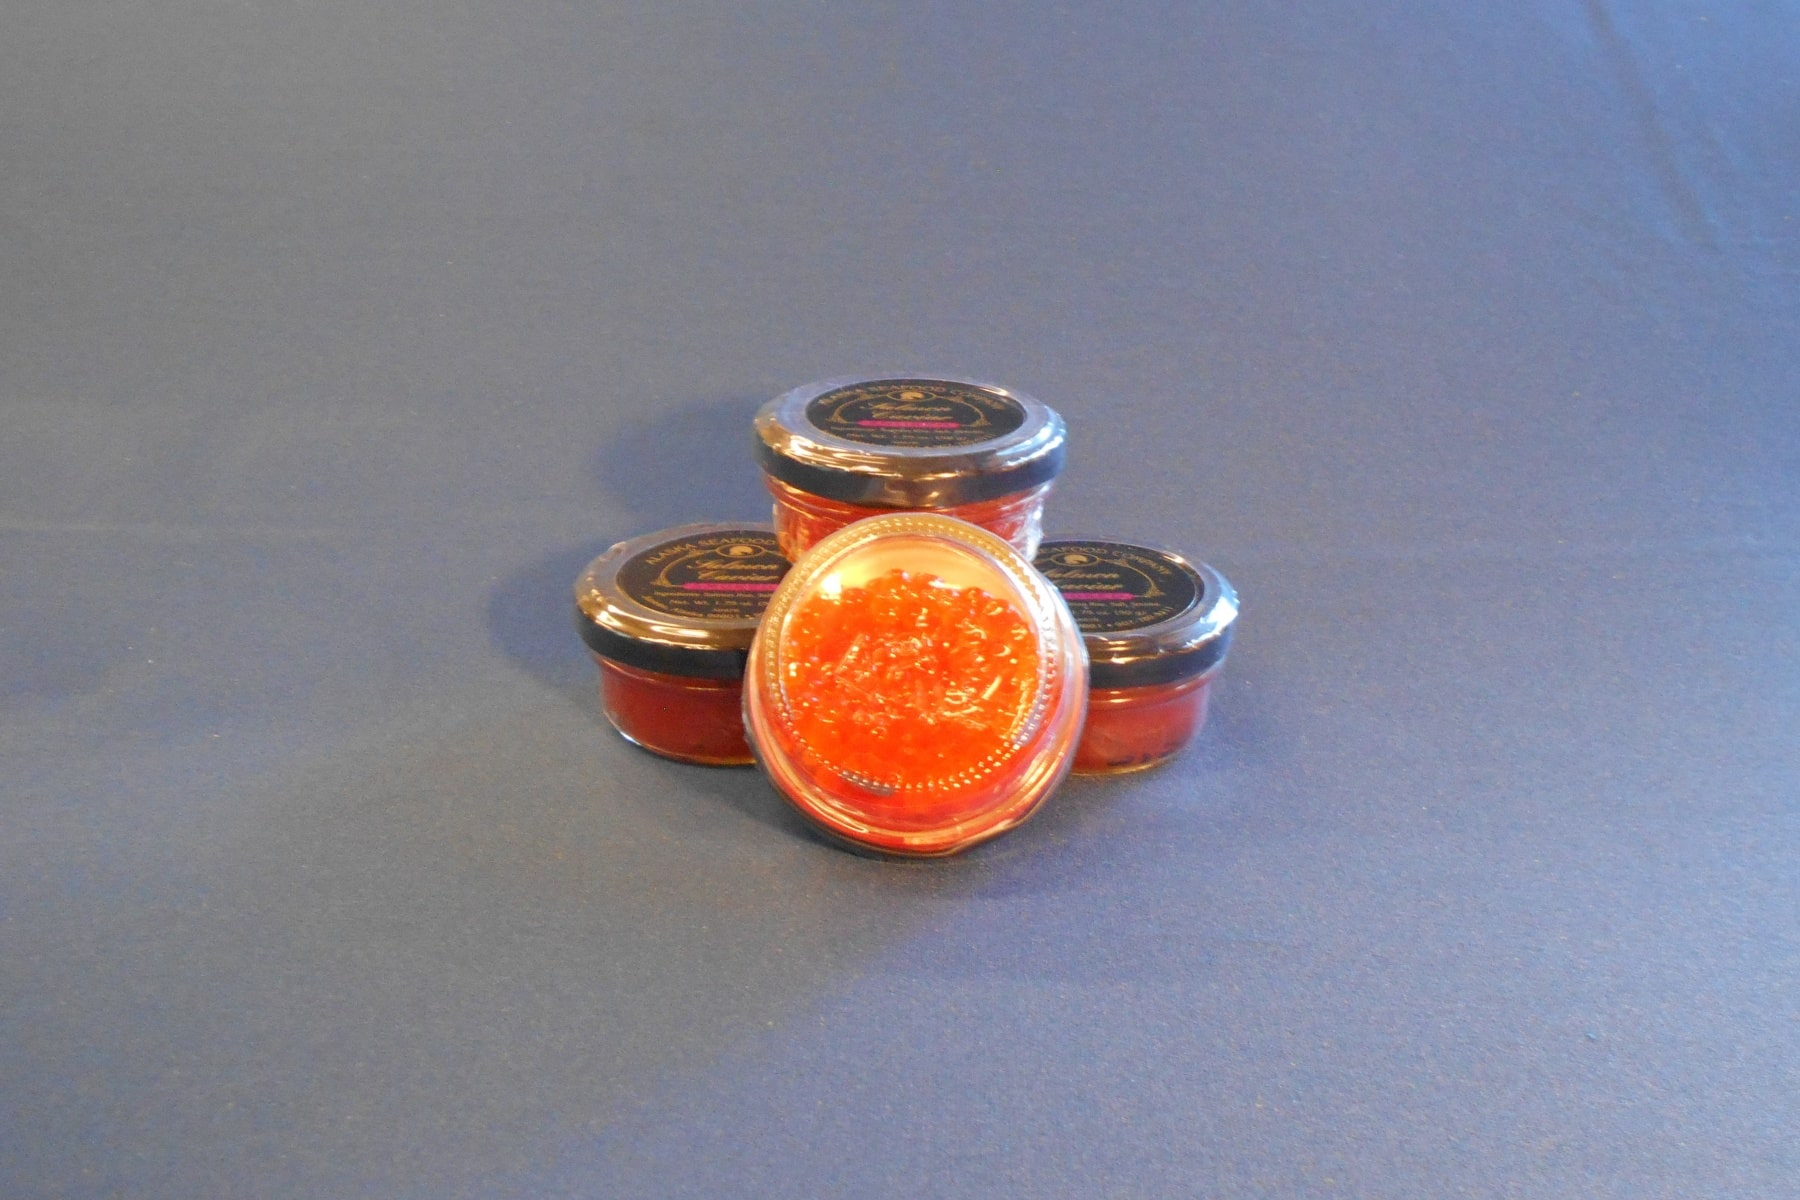 Smoked Wild Alaskan Caviar - Bottom View